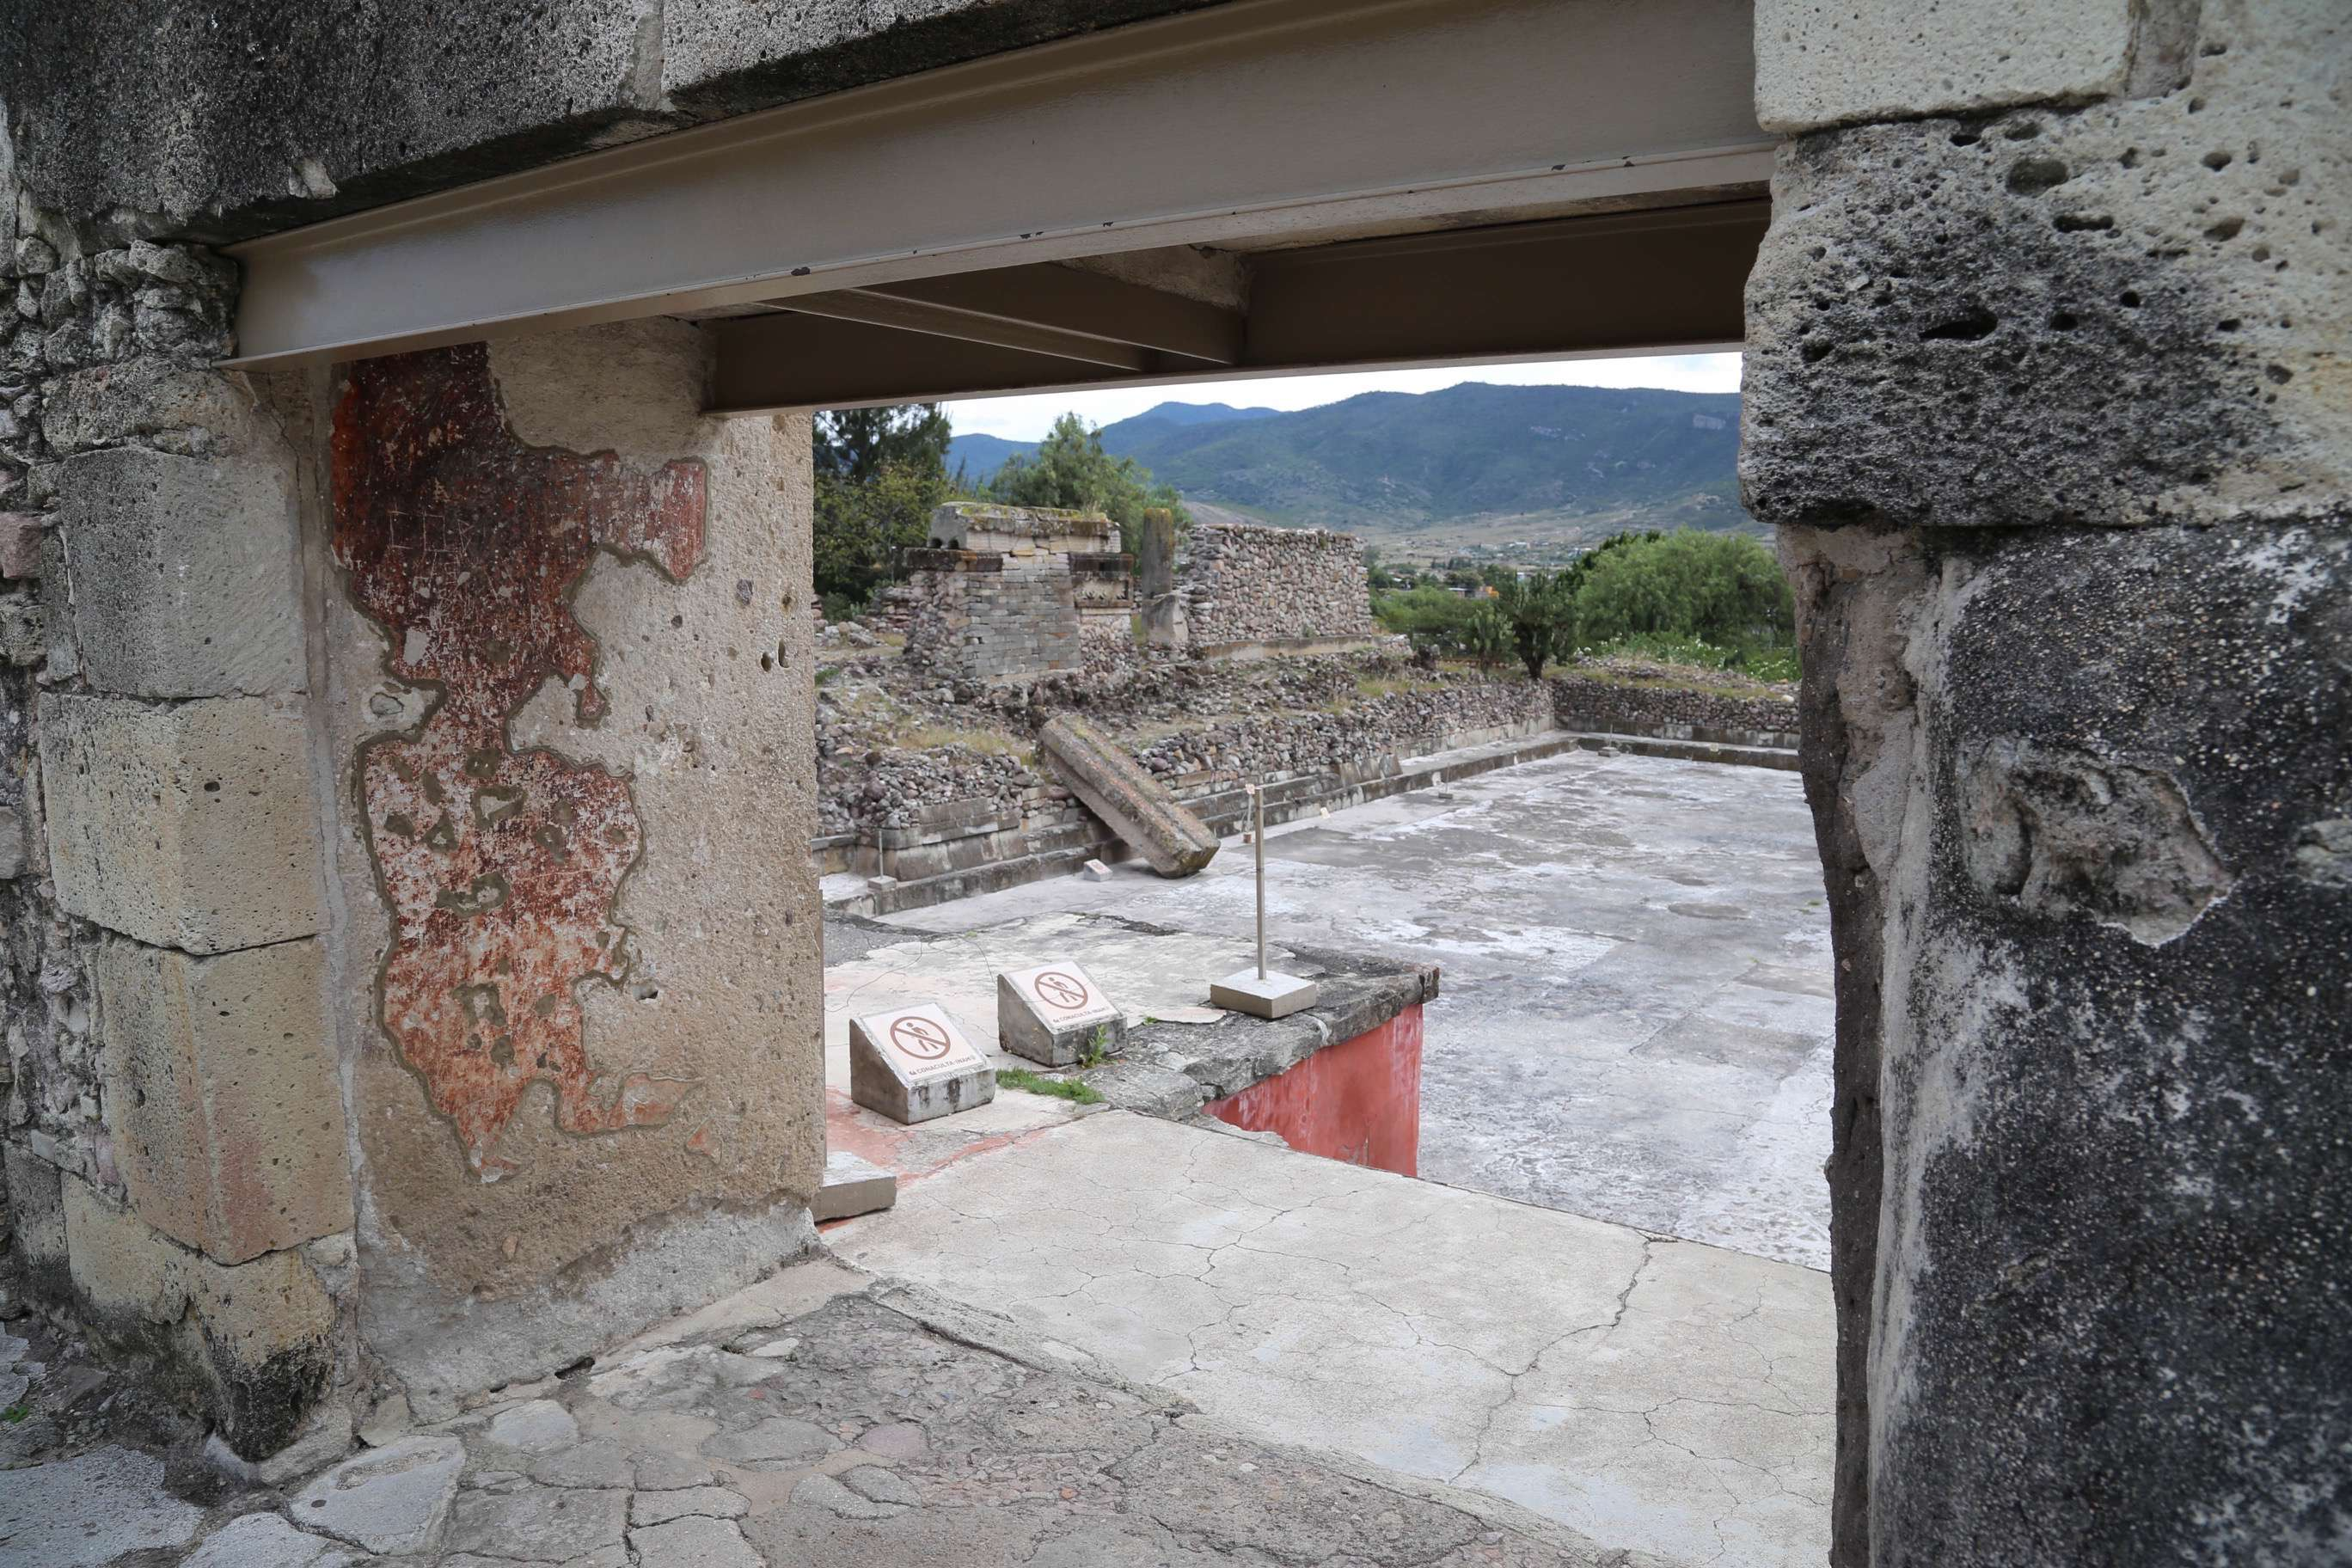 A view from atop one of the temple buildings at Mitla looking out to the main courtyard, below.